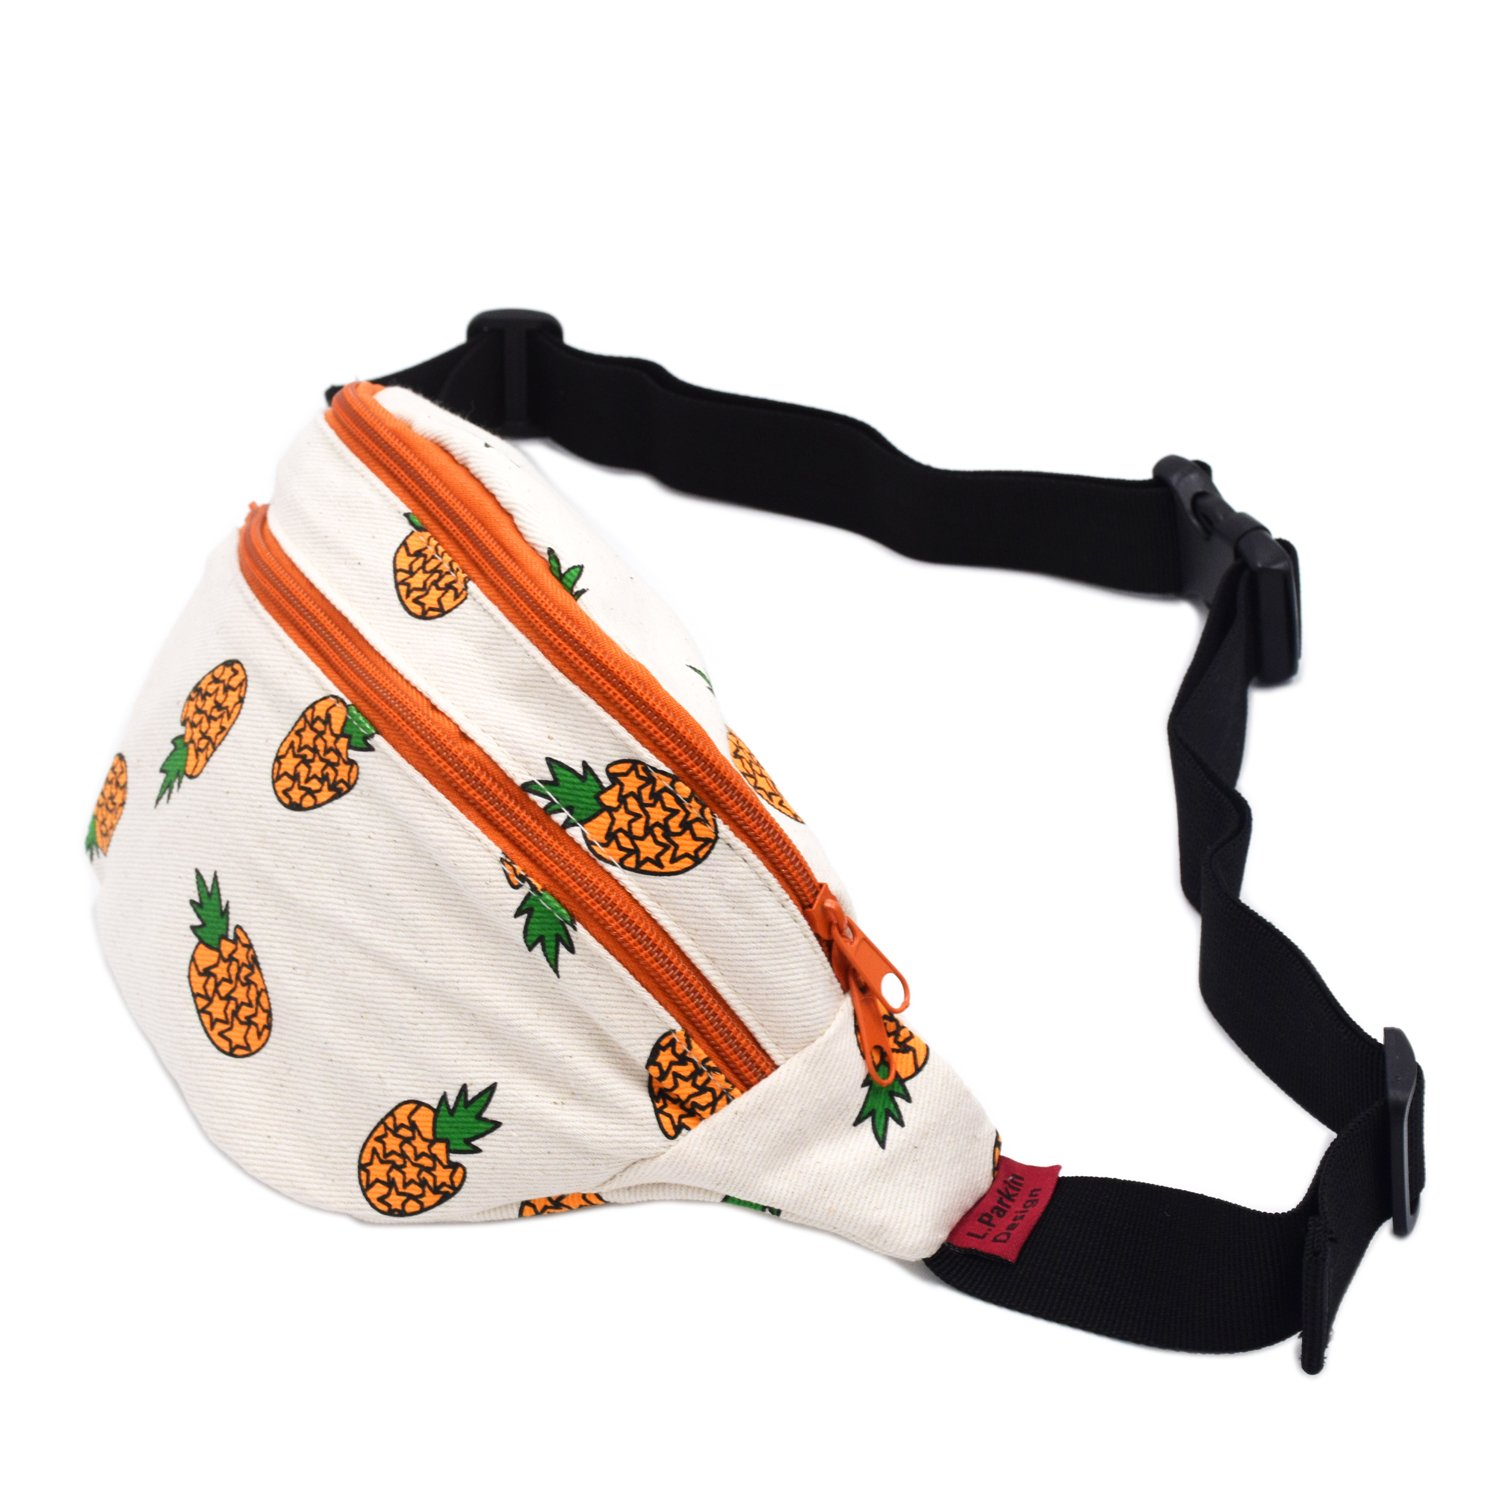 Fanny Pack Pineapple Hip Bag Waist Bag Canvas Bum Belt Hip Pouch Bags Purses Festival LParkin